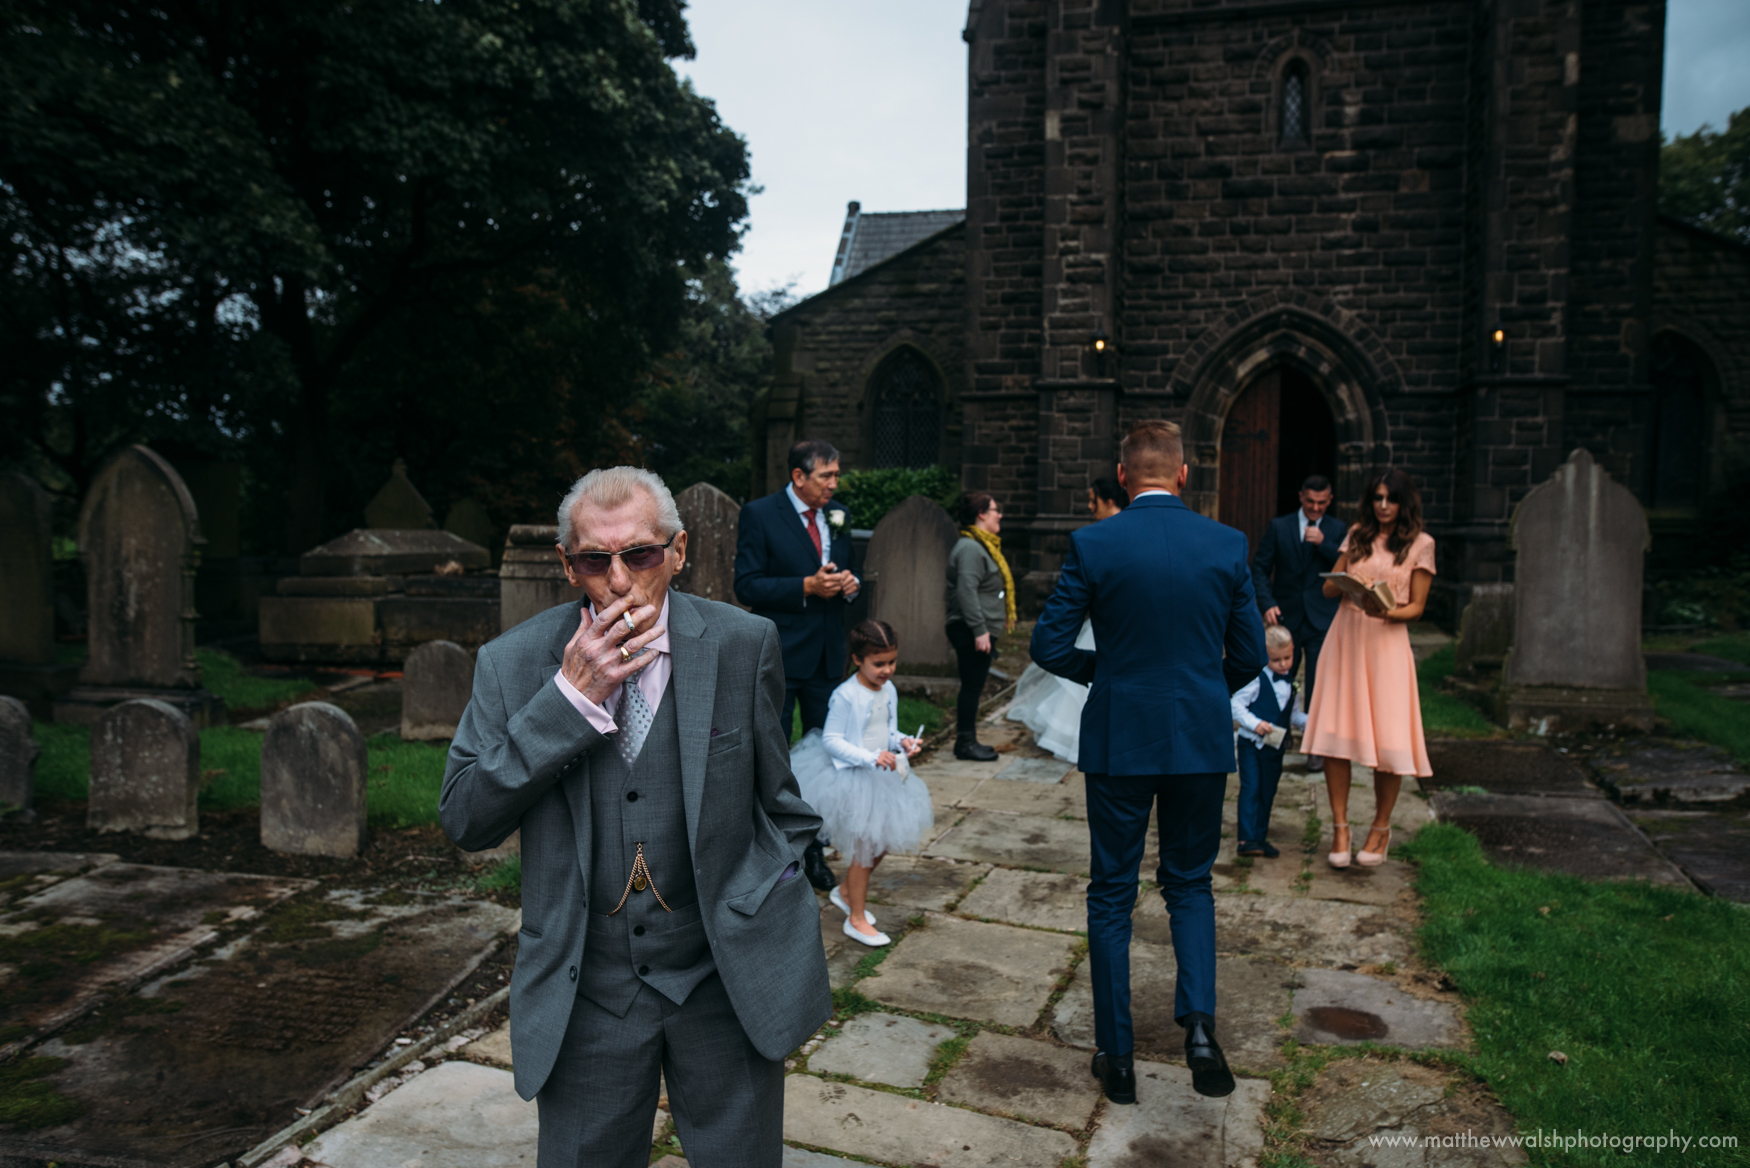 Grandfather of the groom has a quick cigarette after the ceremony